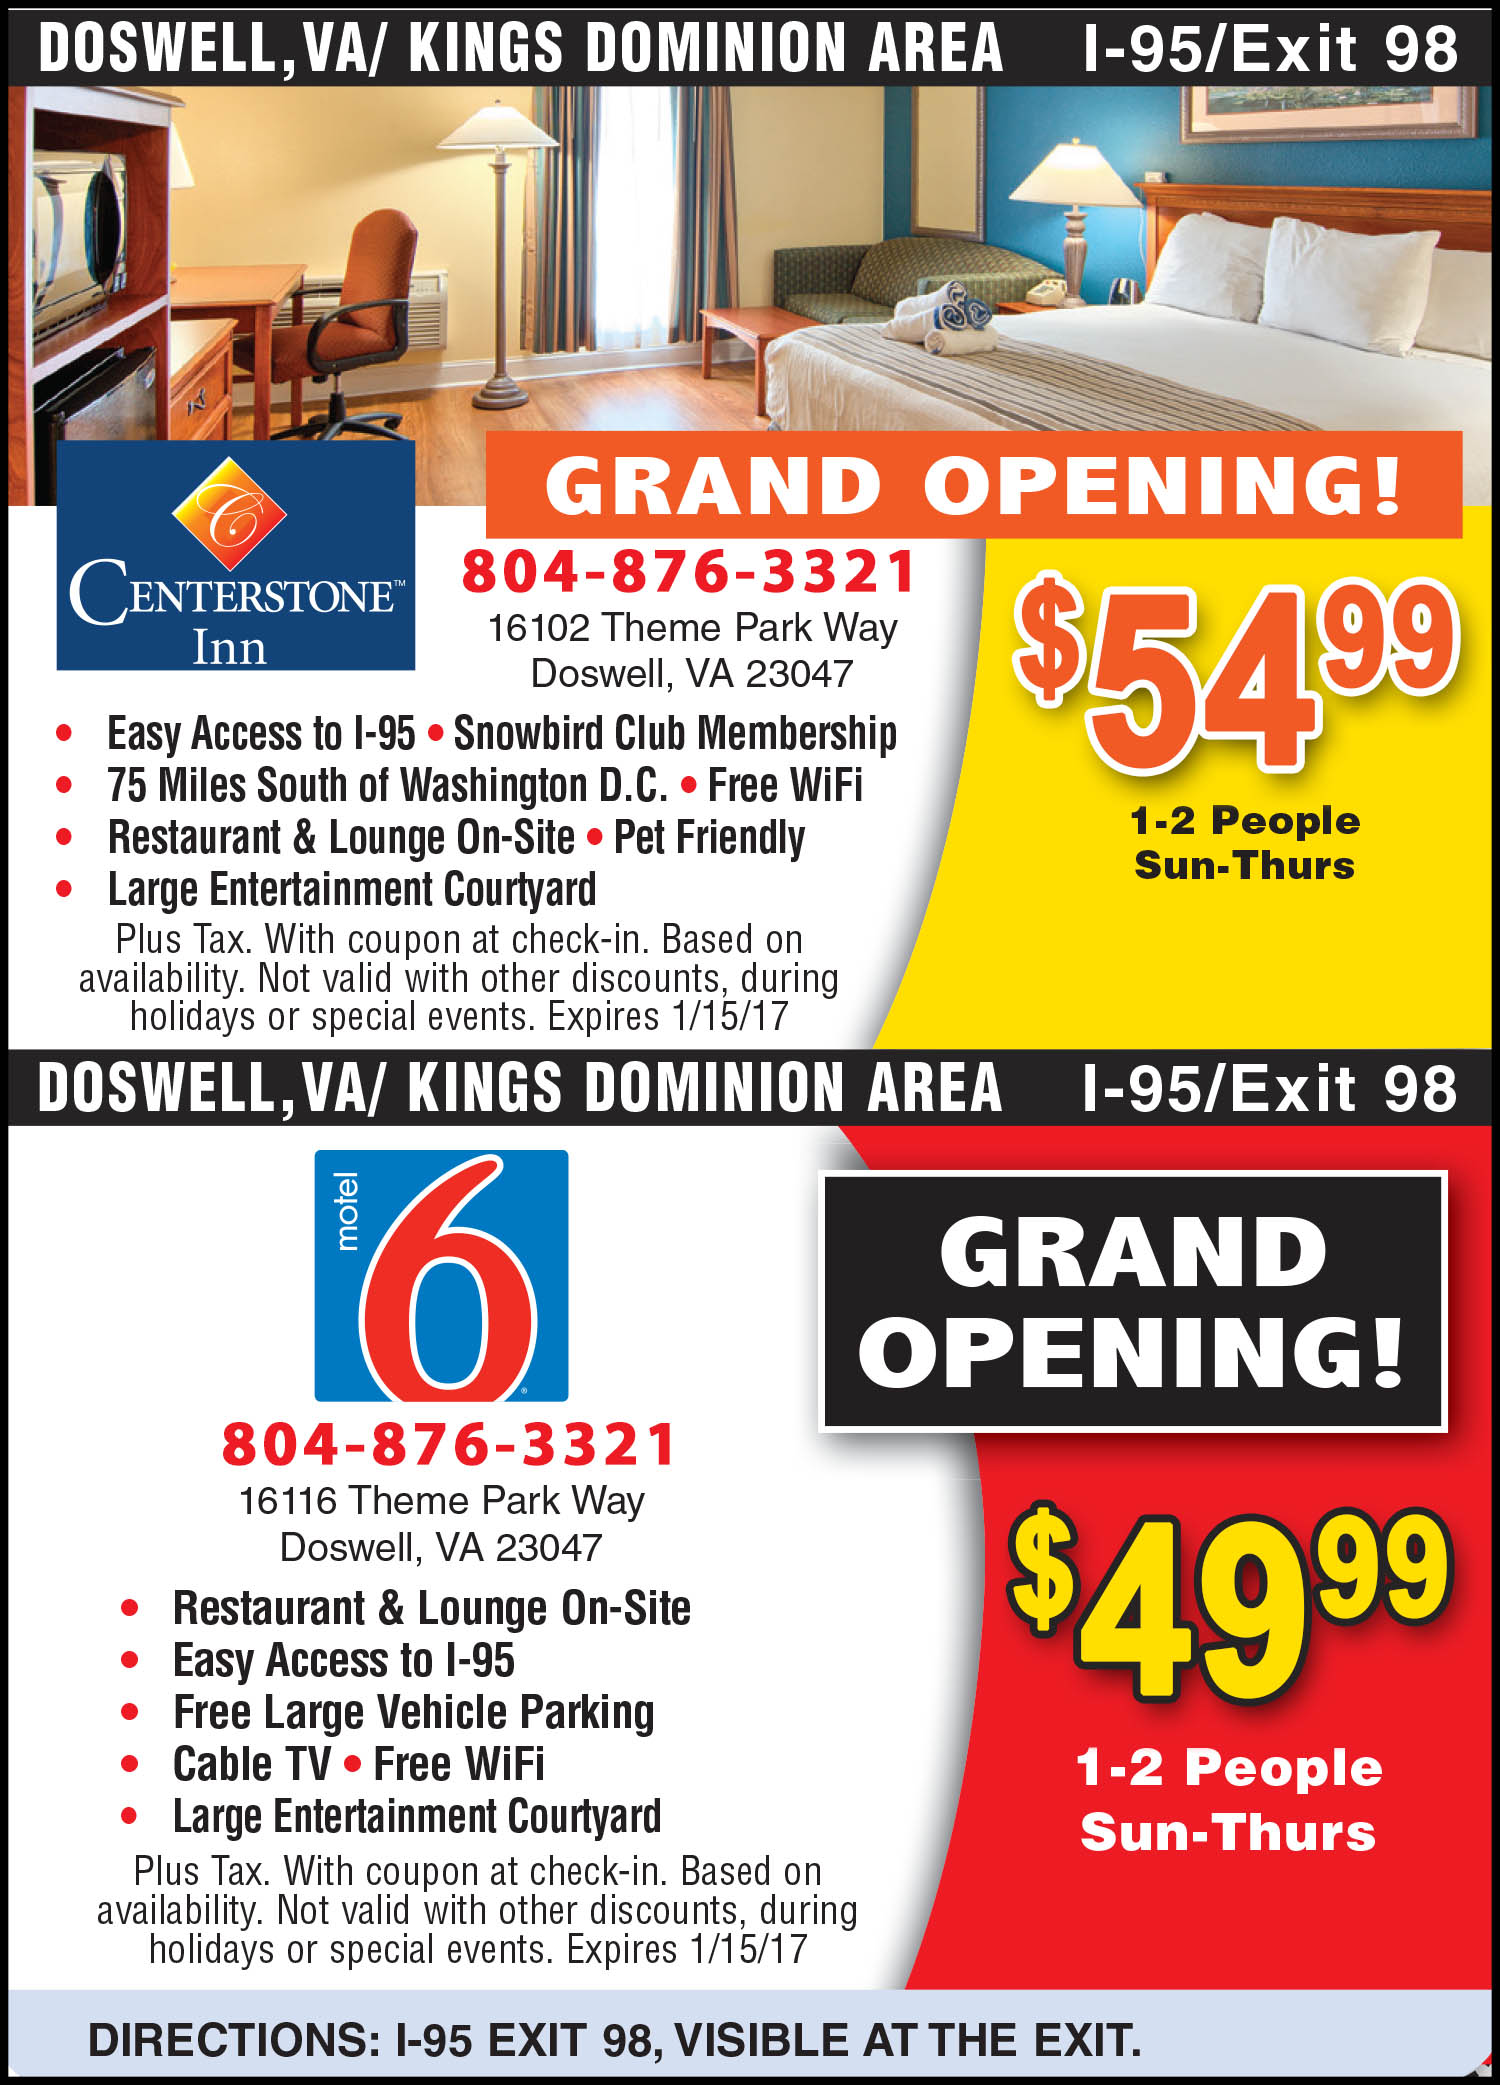 Kings dominion discount coupons - Centerstone Inn